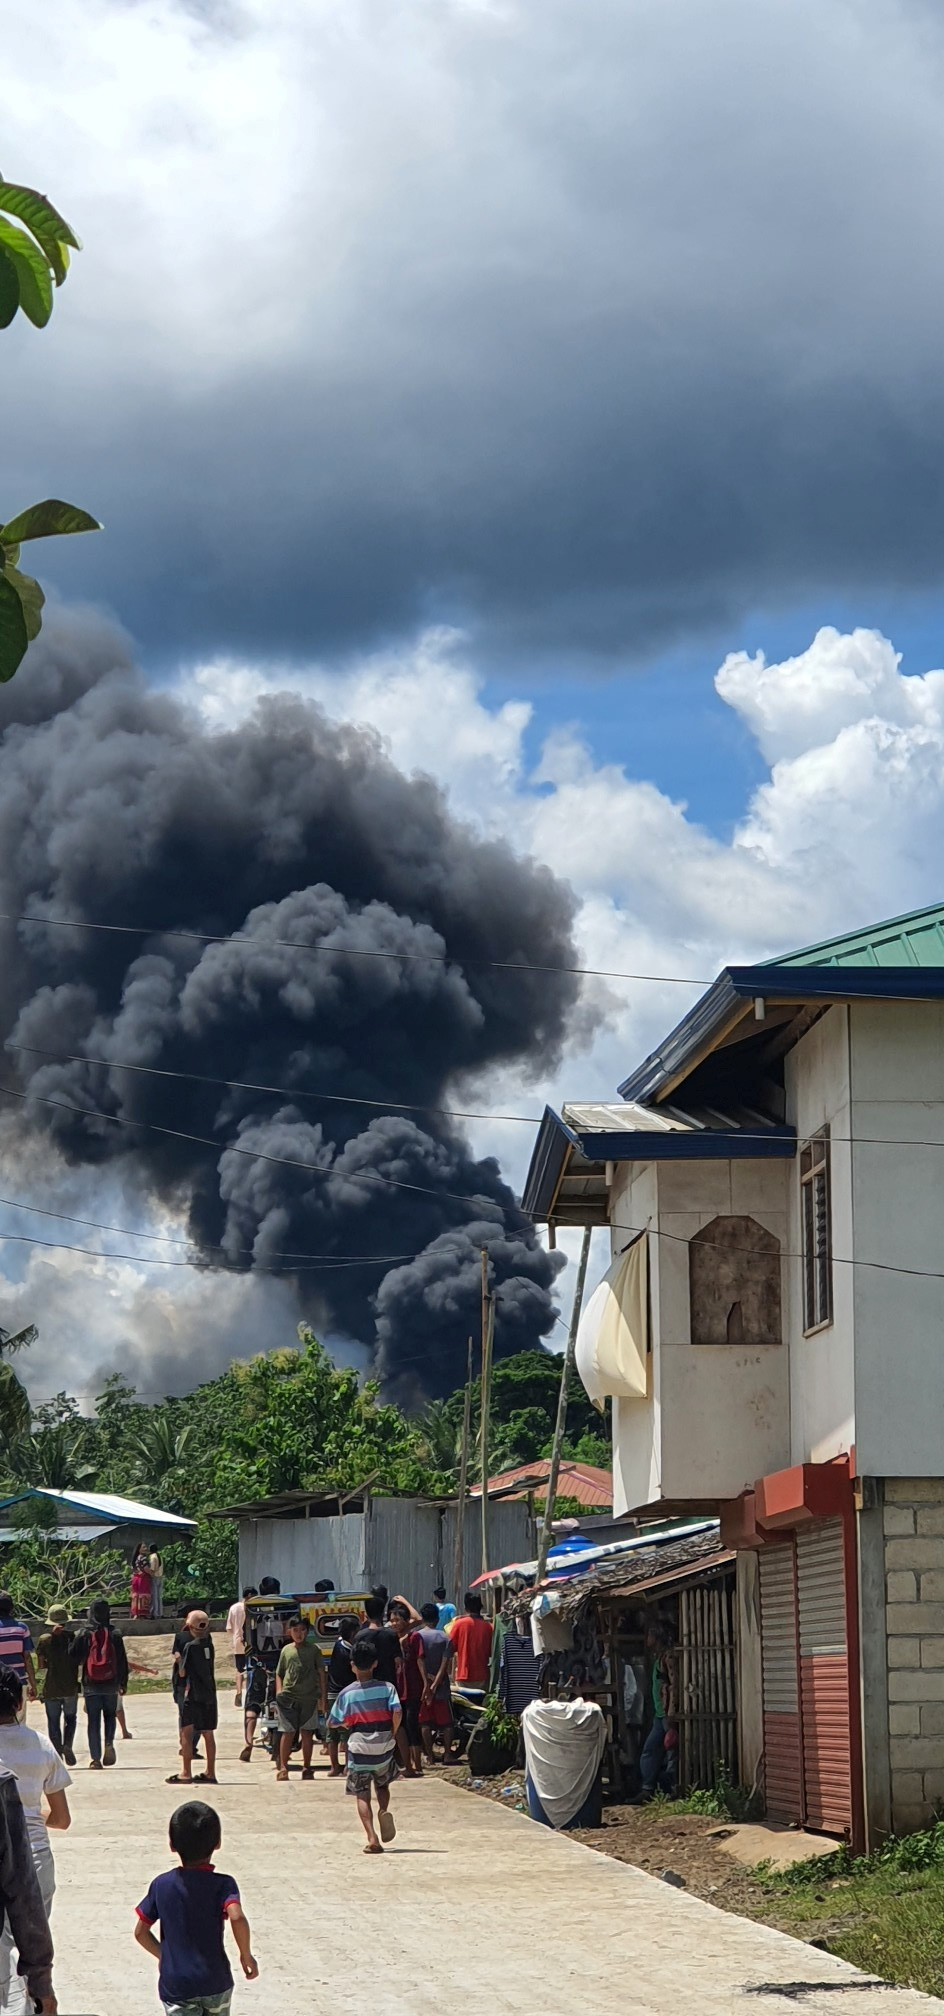 Residents gather as smoke rises from the wreckage, after a Philippines Air Force Lockheed C-130 transport plane, carrying troops, crashed on landing in Jolo, Sulu, Philippines July 4, 2021 in this image obtained from social media. Bogs Muhajiran via REUTERS